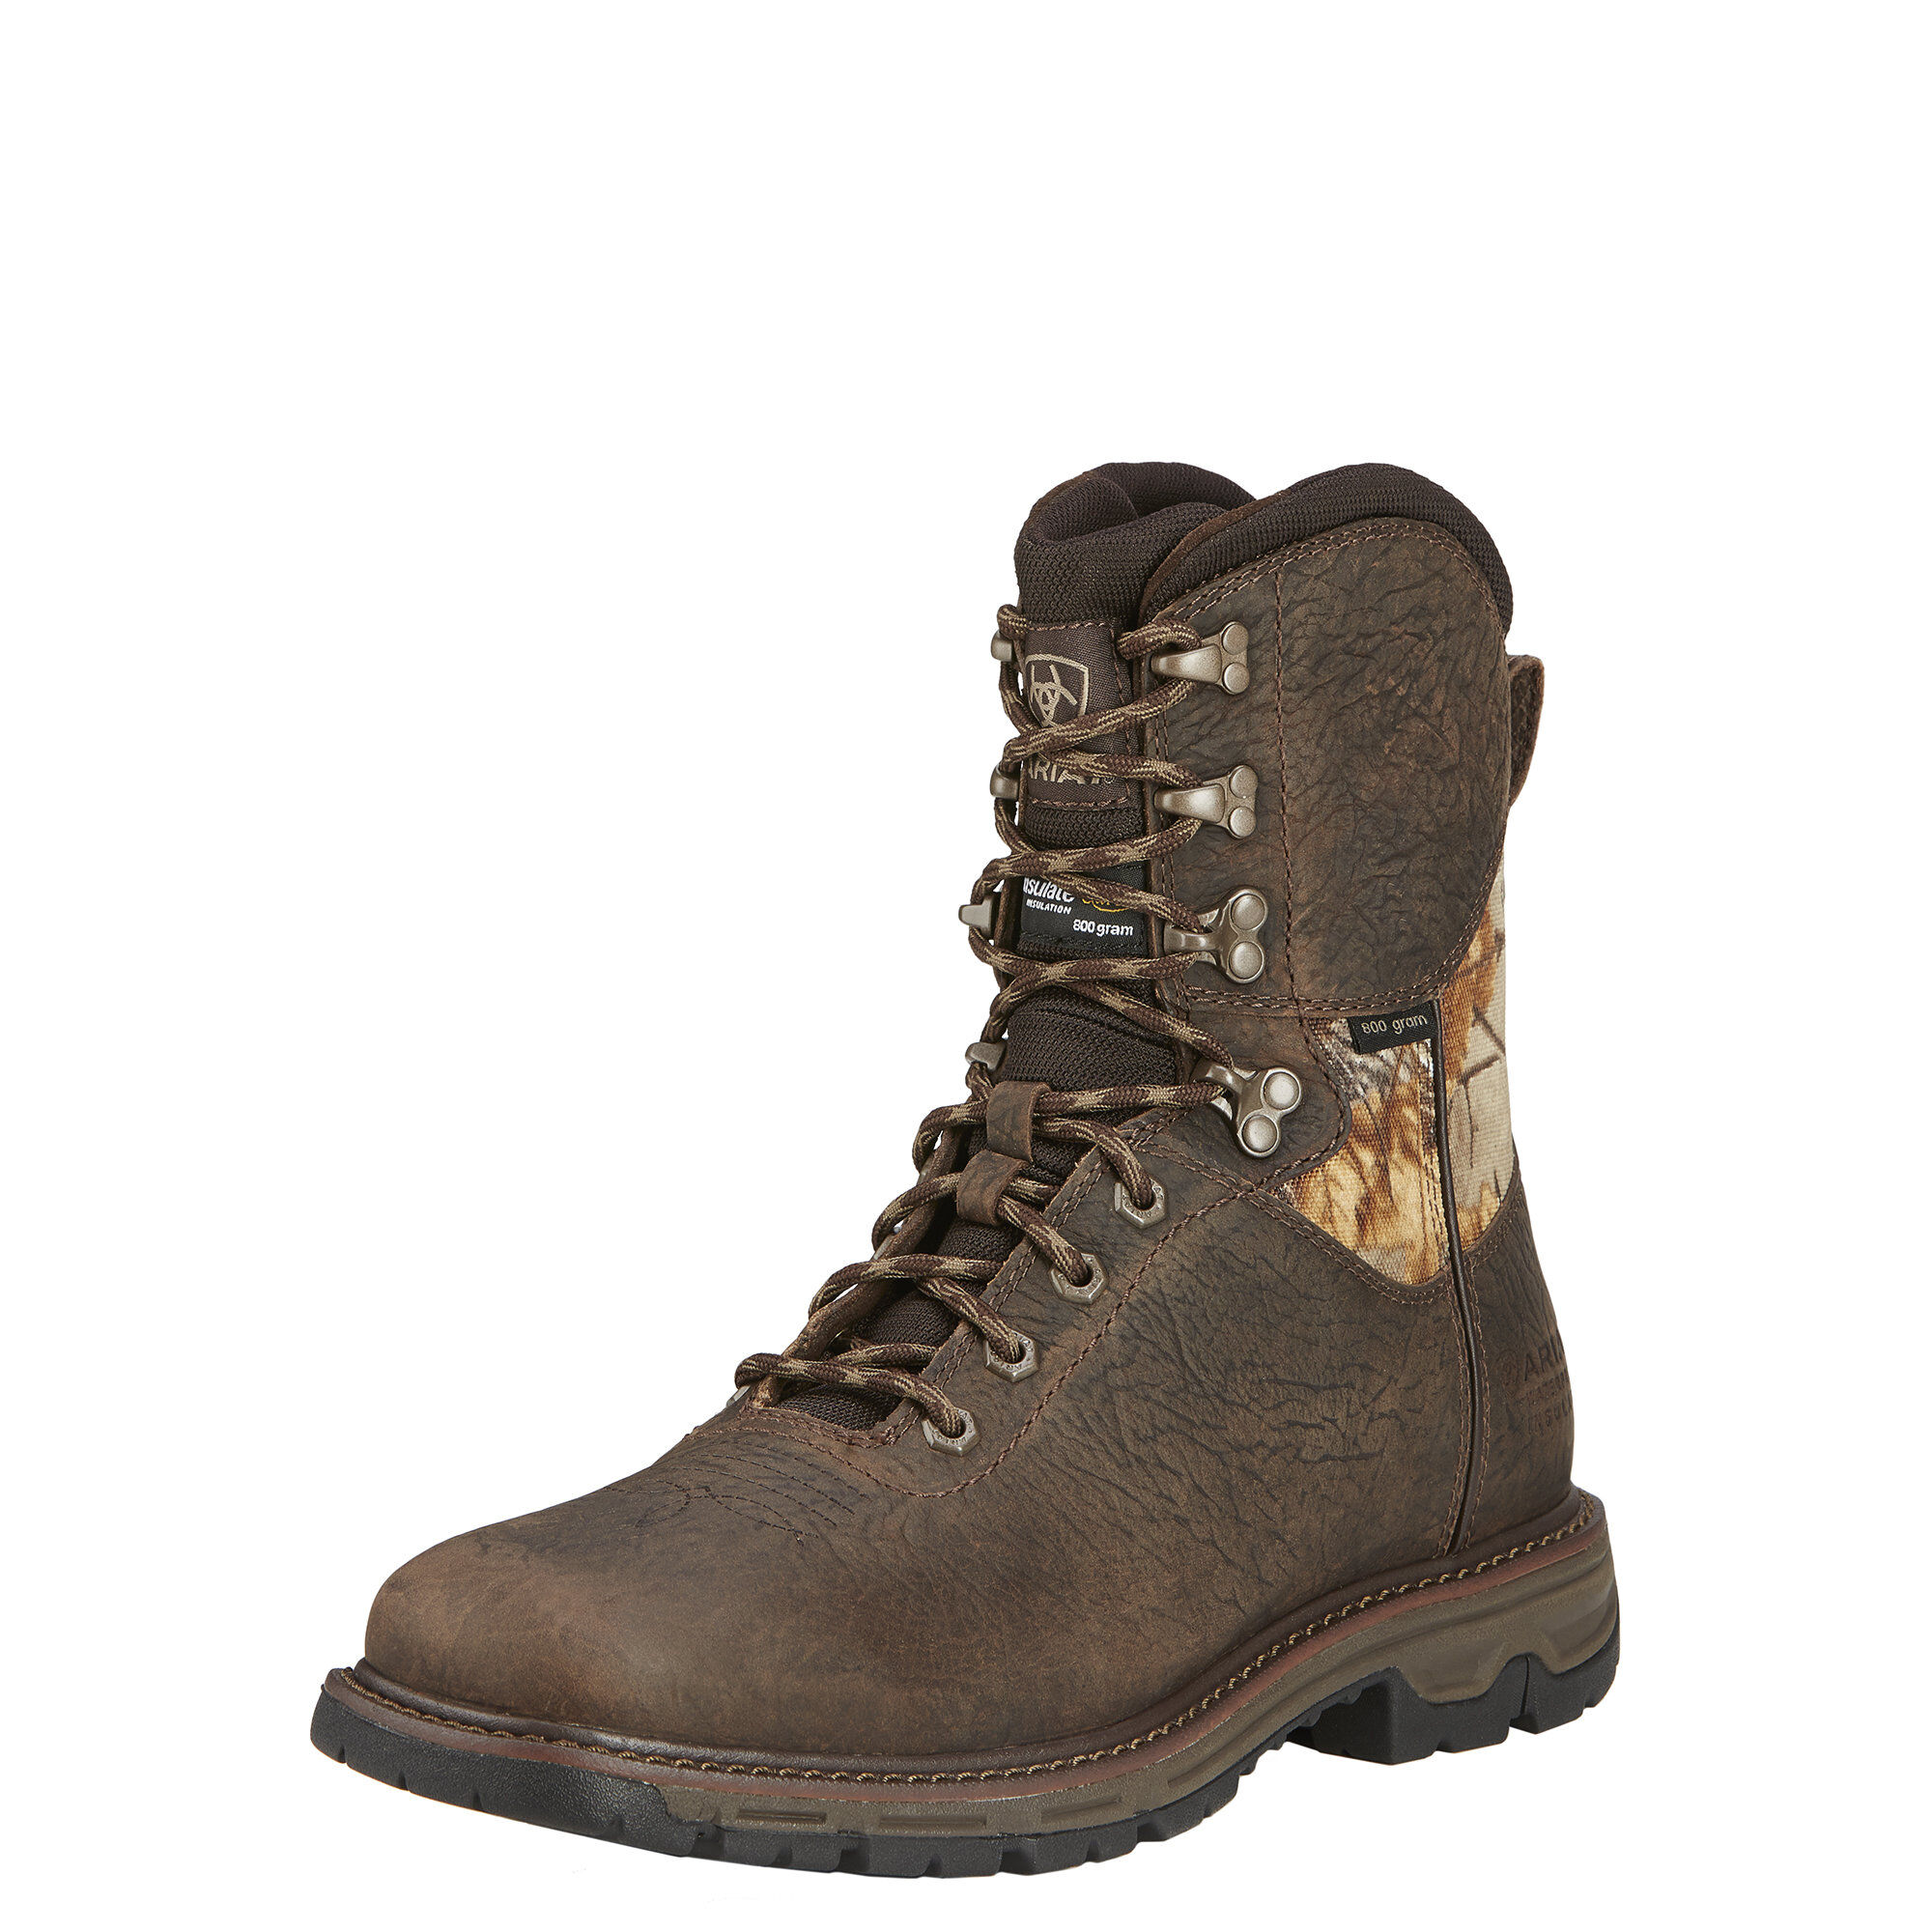 Cinquest 8 Quot Waterproof 800g Hunting Boot